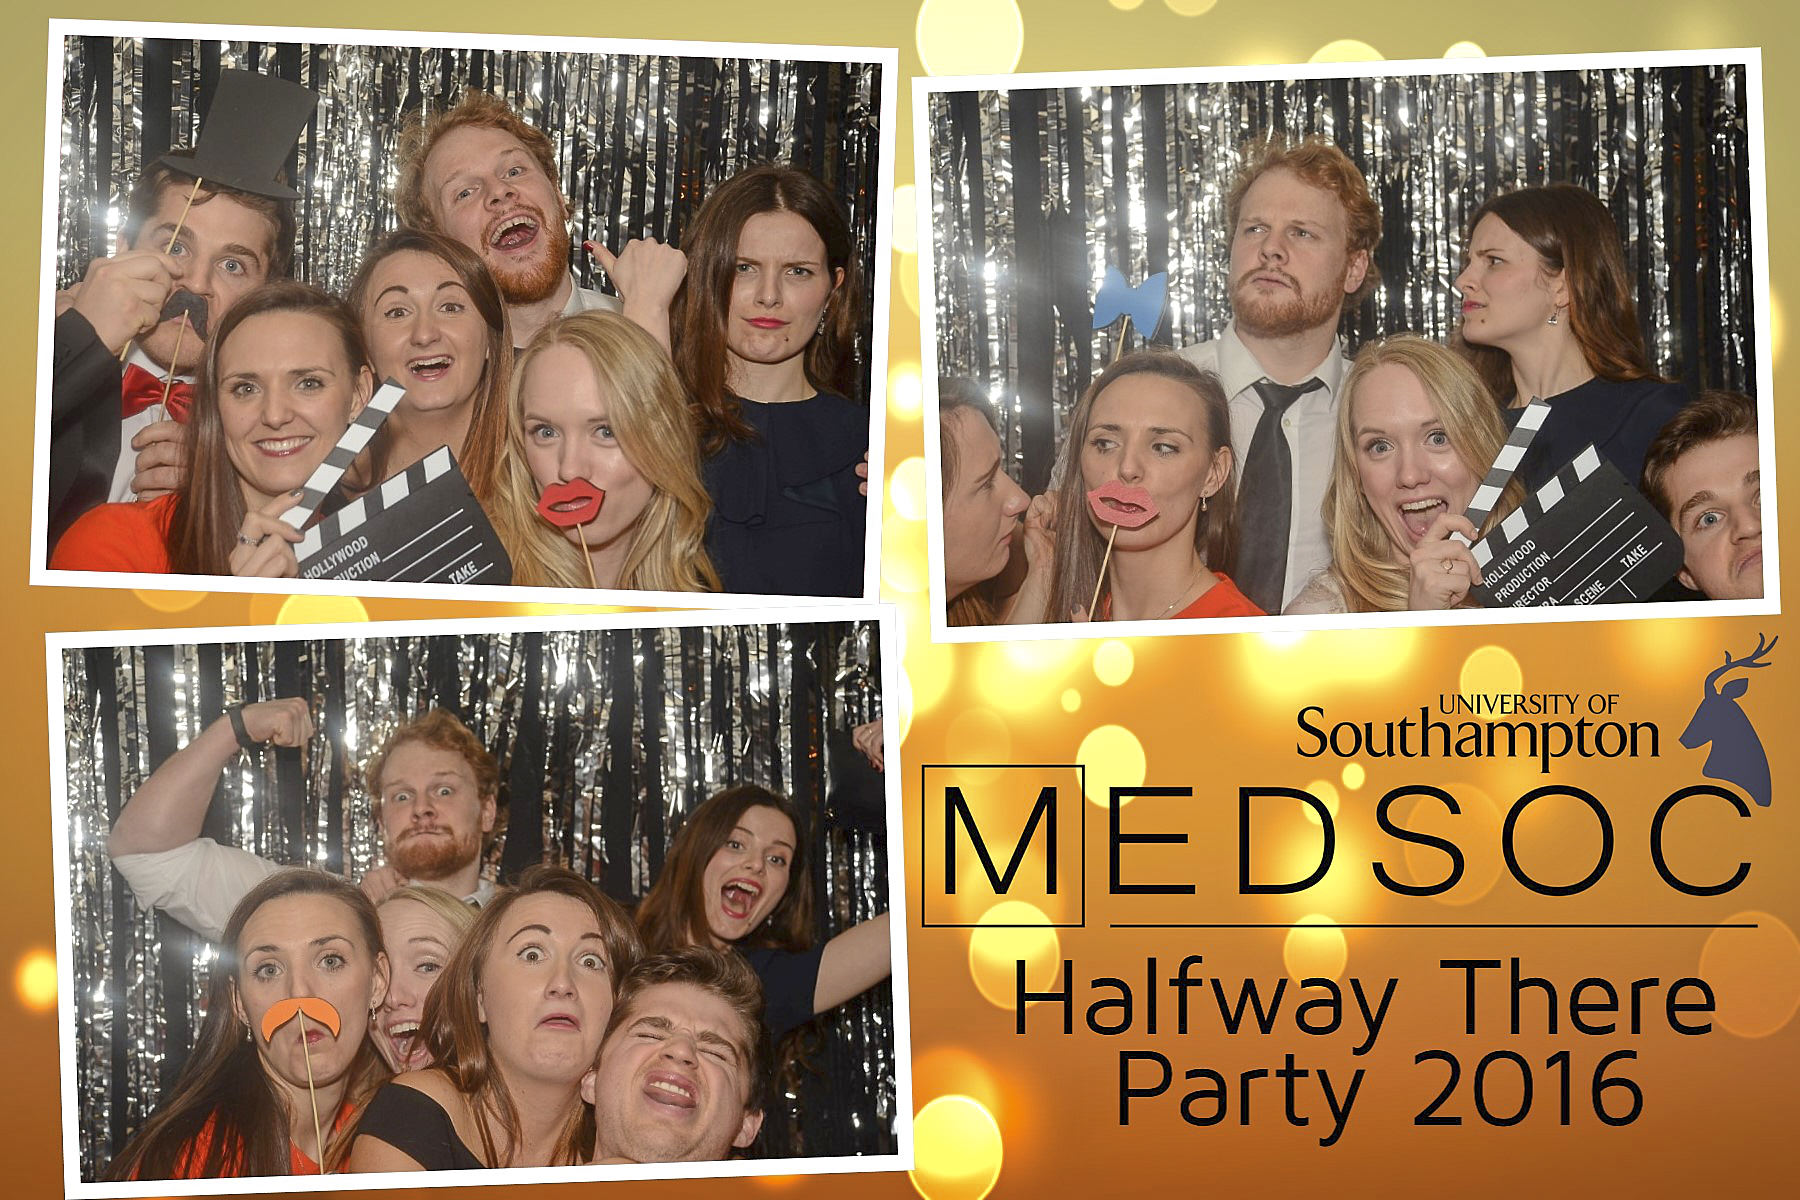 MedSoc Halfway There Party 2016 DS010431.jpg